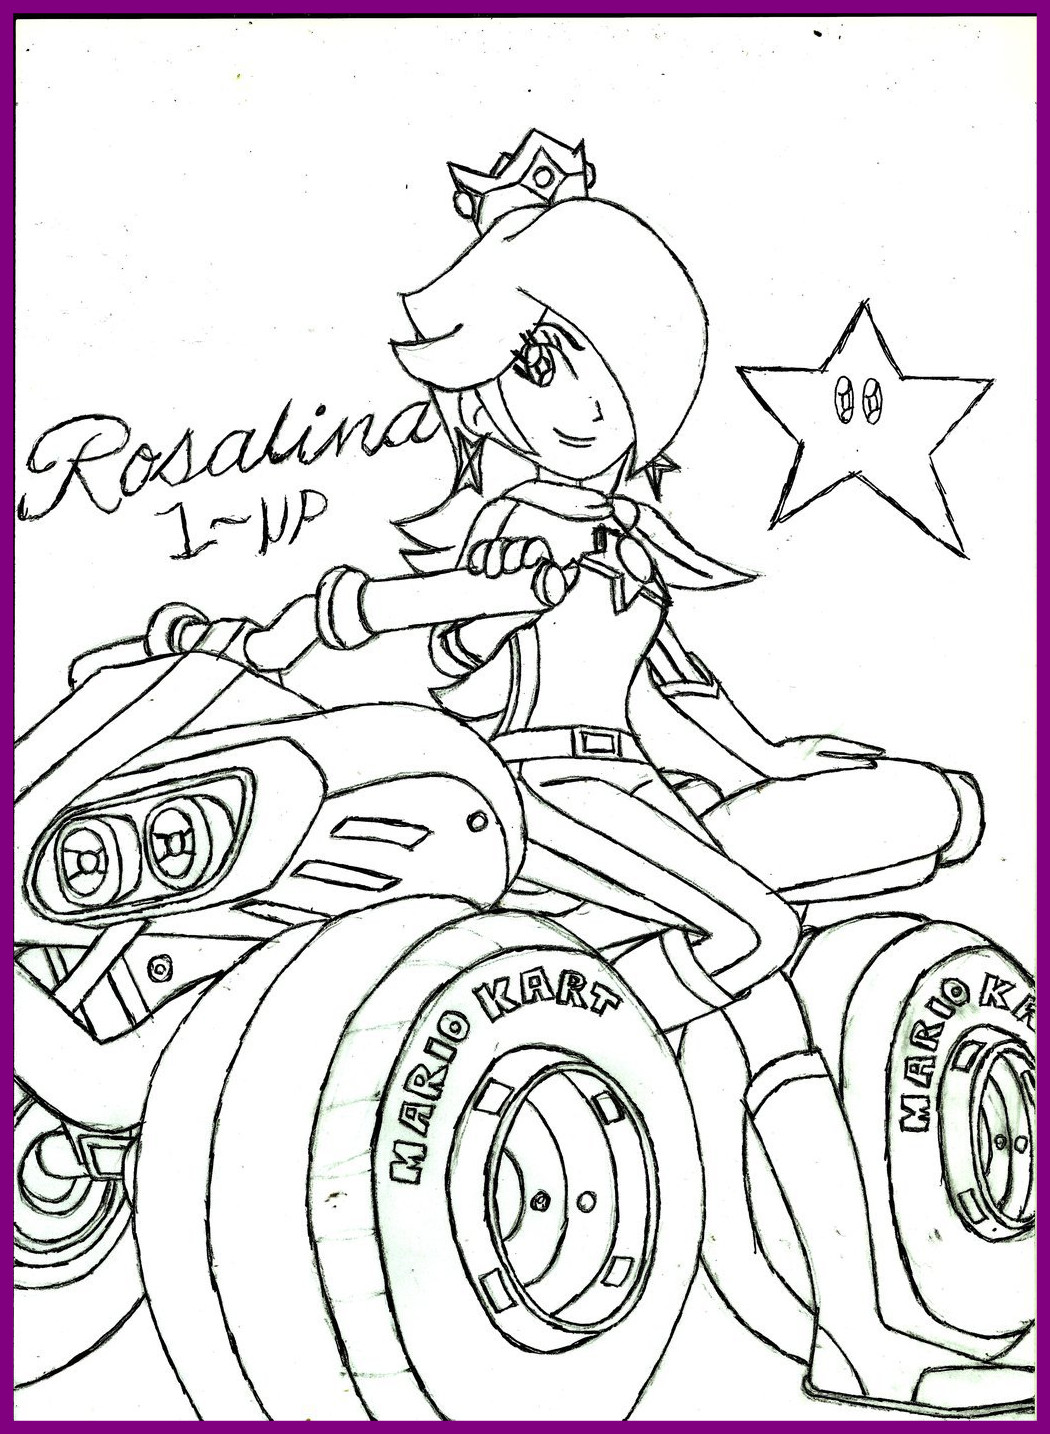 Nintendo Characters Coloring Pages at GetDrawings | Free ...